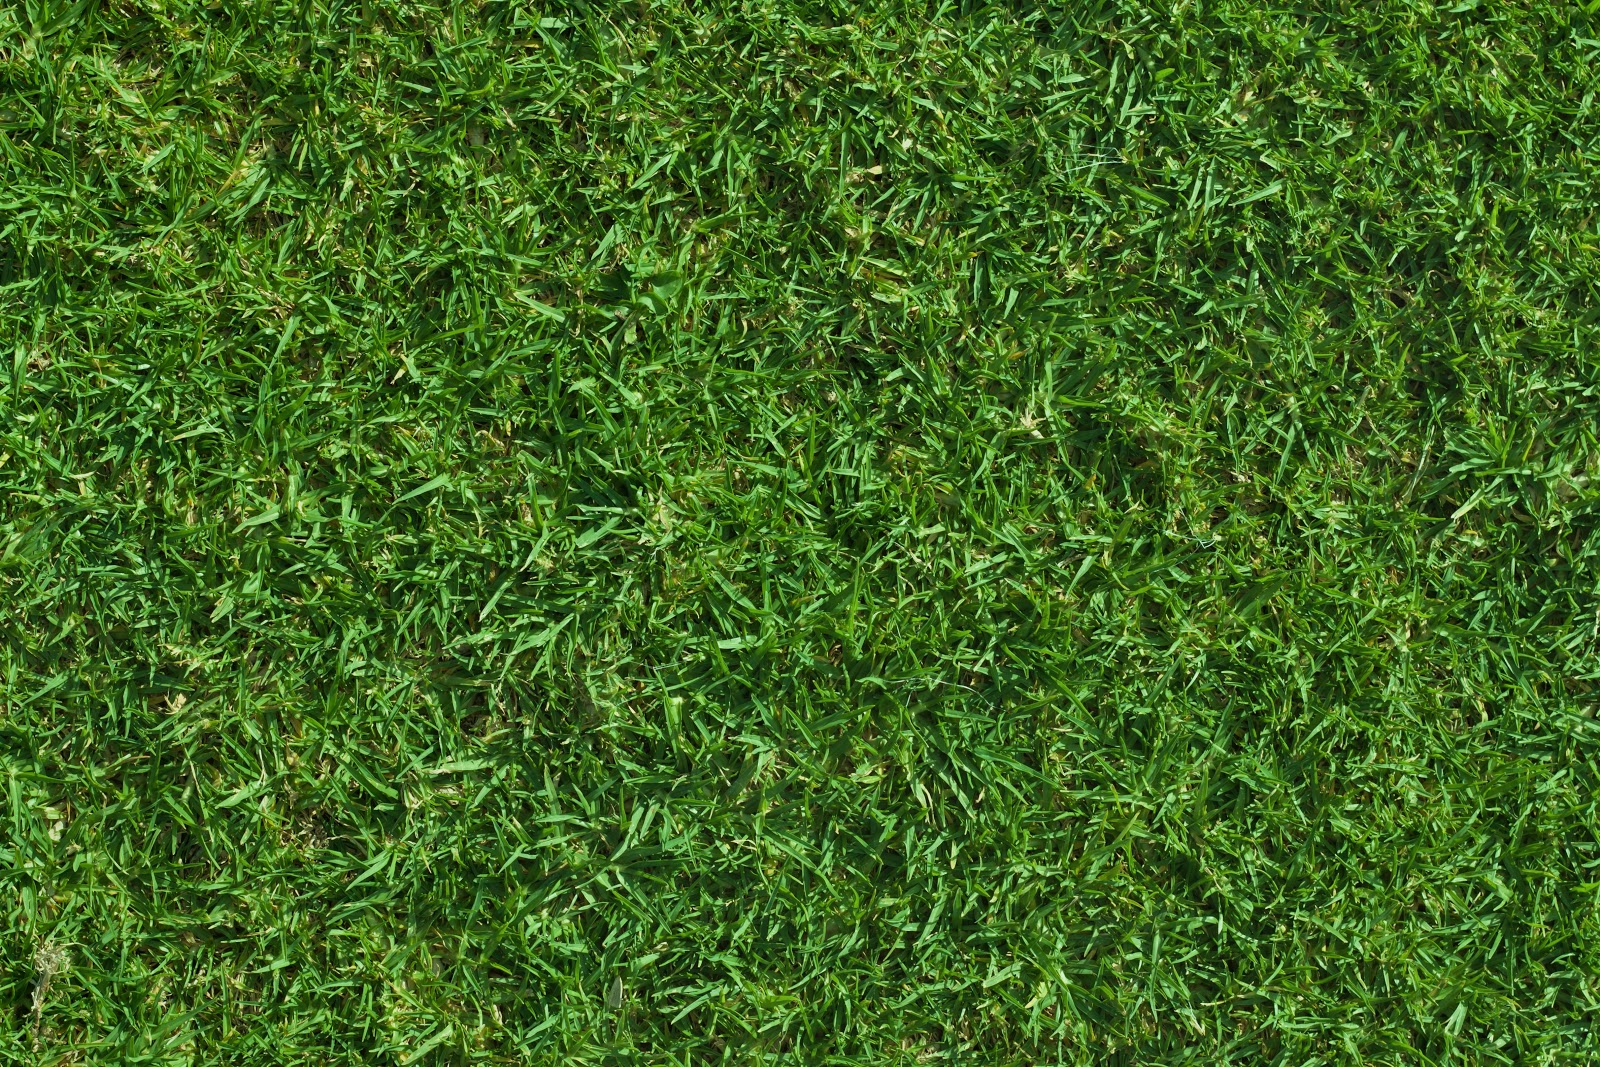 grass texture hd. Green Lush Grass Texture Hd